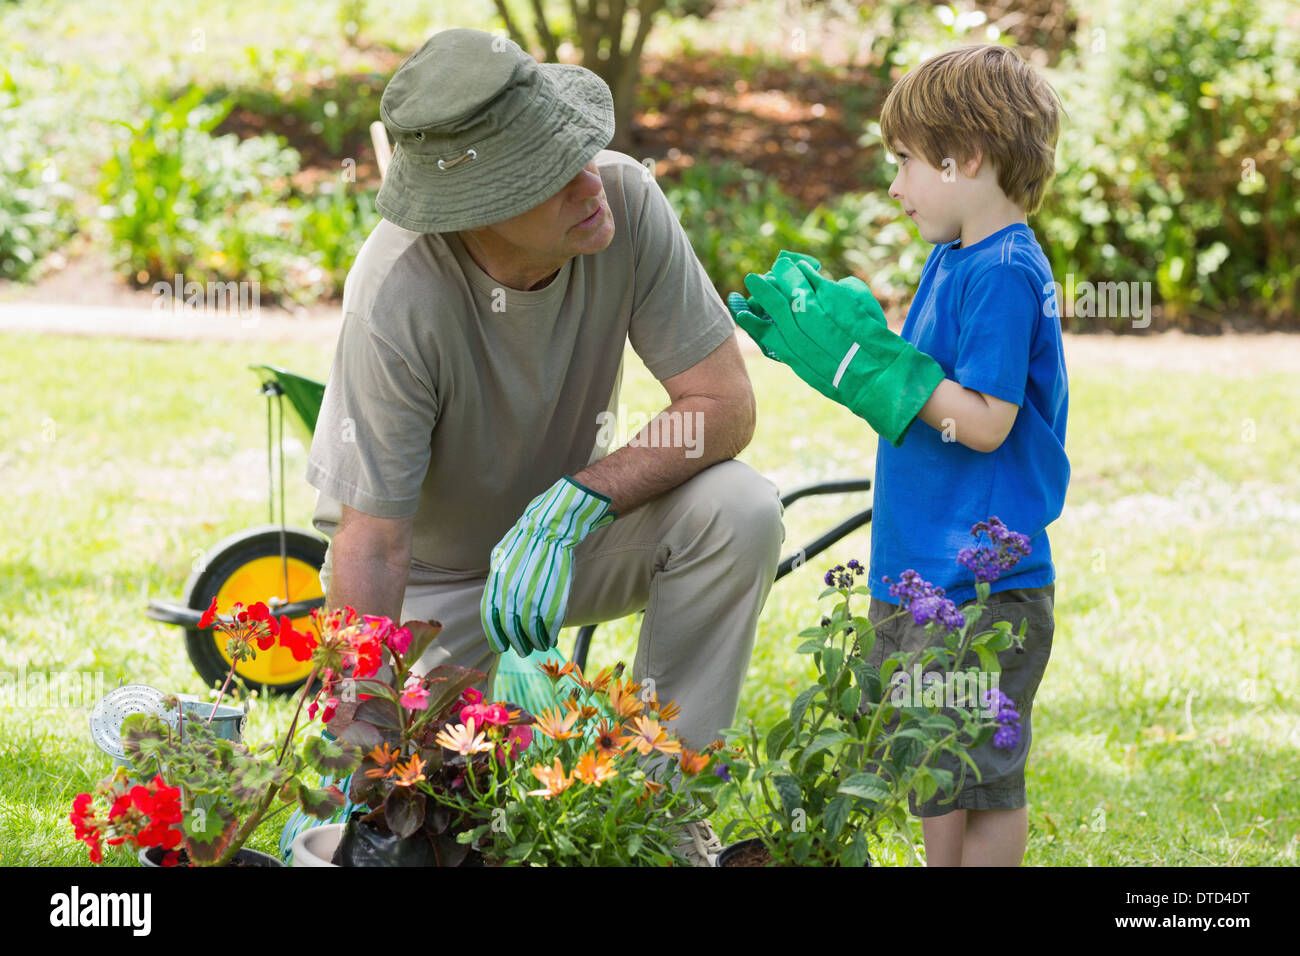 Grandfather and grandson engaged in gardening - Stock Image